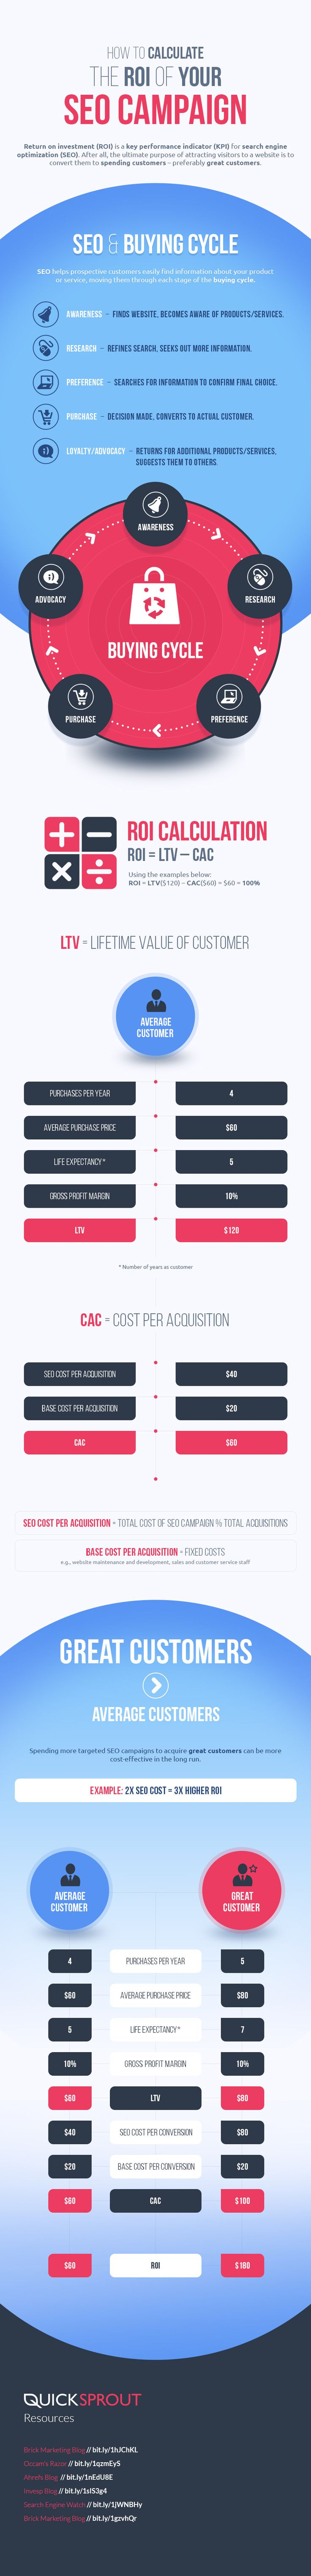 How to Calculate the ROI of Your SEO Campaign.